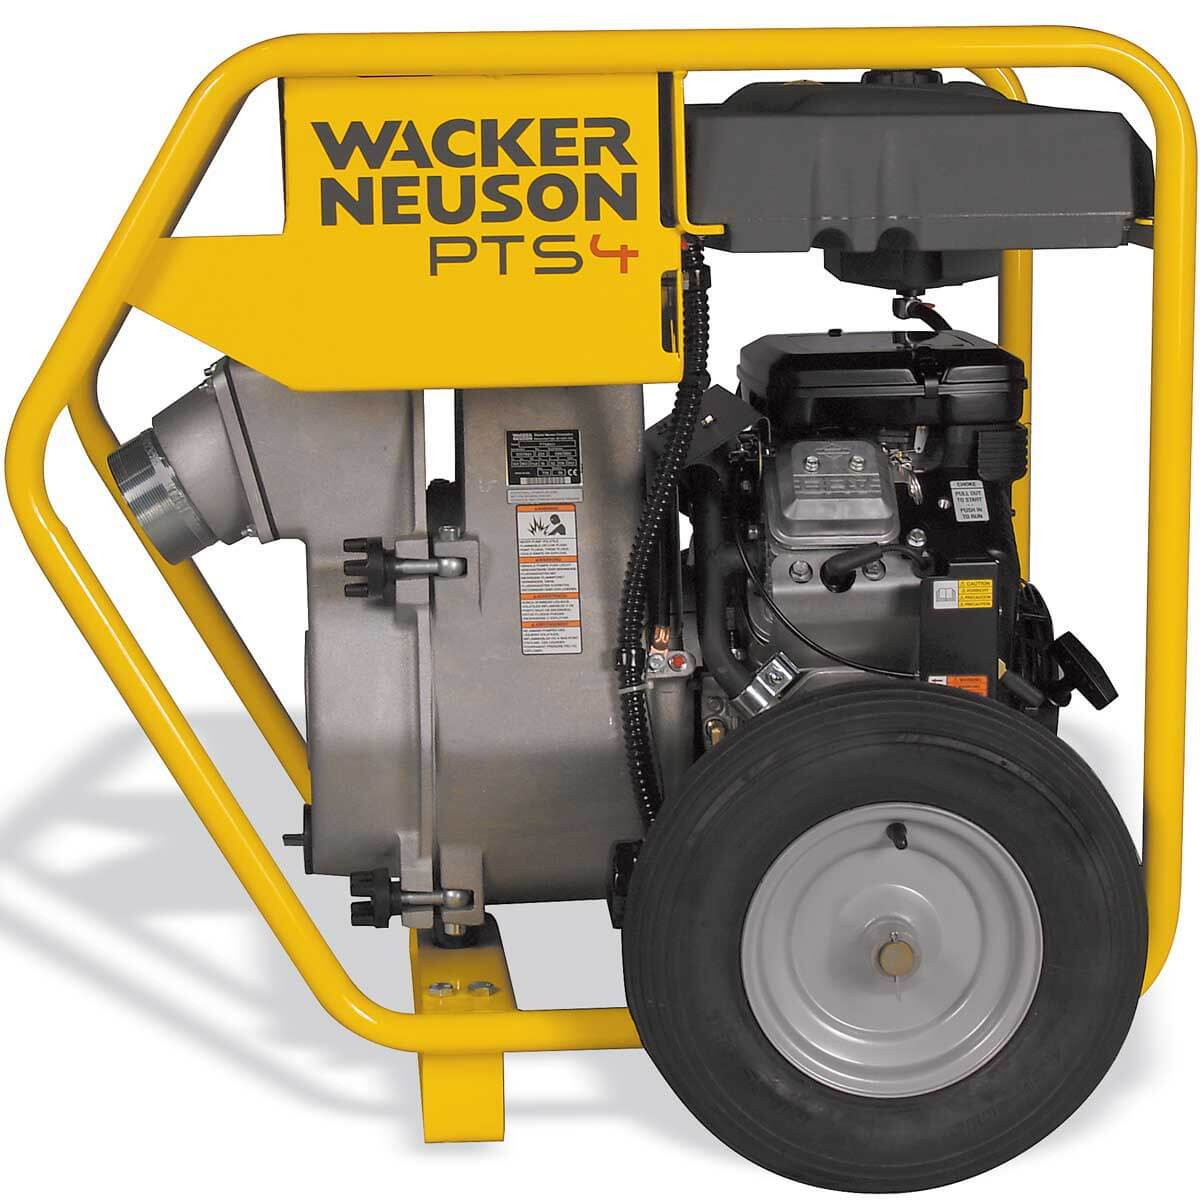 PTS4V Wacker Neuson Centrifugal Trash Pump